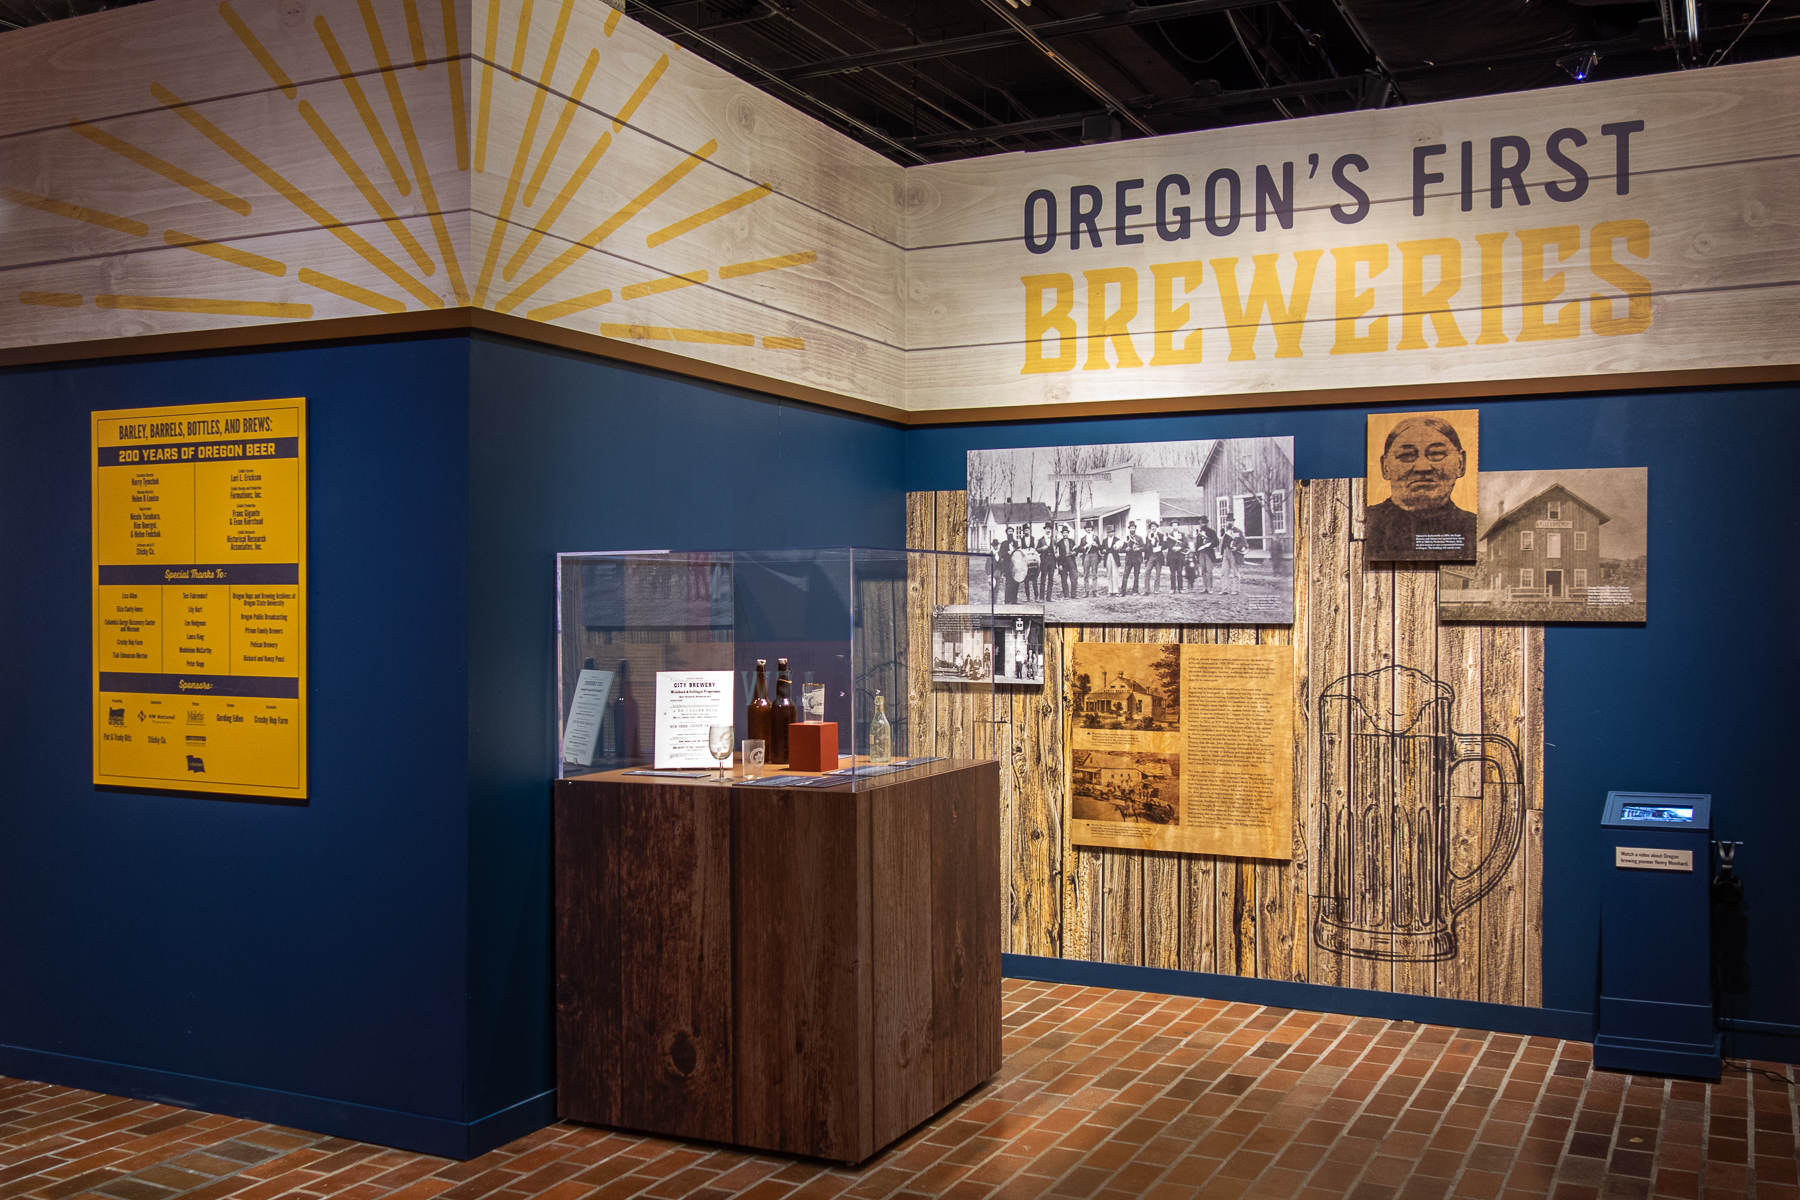 One of the walls that I designed in the opening area of the exhibit showing some of the earliest breweries in Oregon. The heading is a printed vinyl as well as the textured wood/beer stein background. Layered images are directly printed onto black sintra and falcon board.